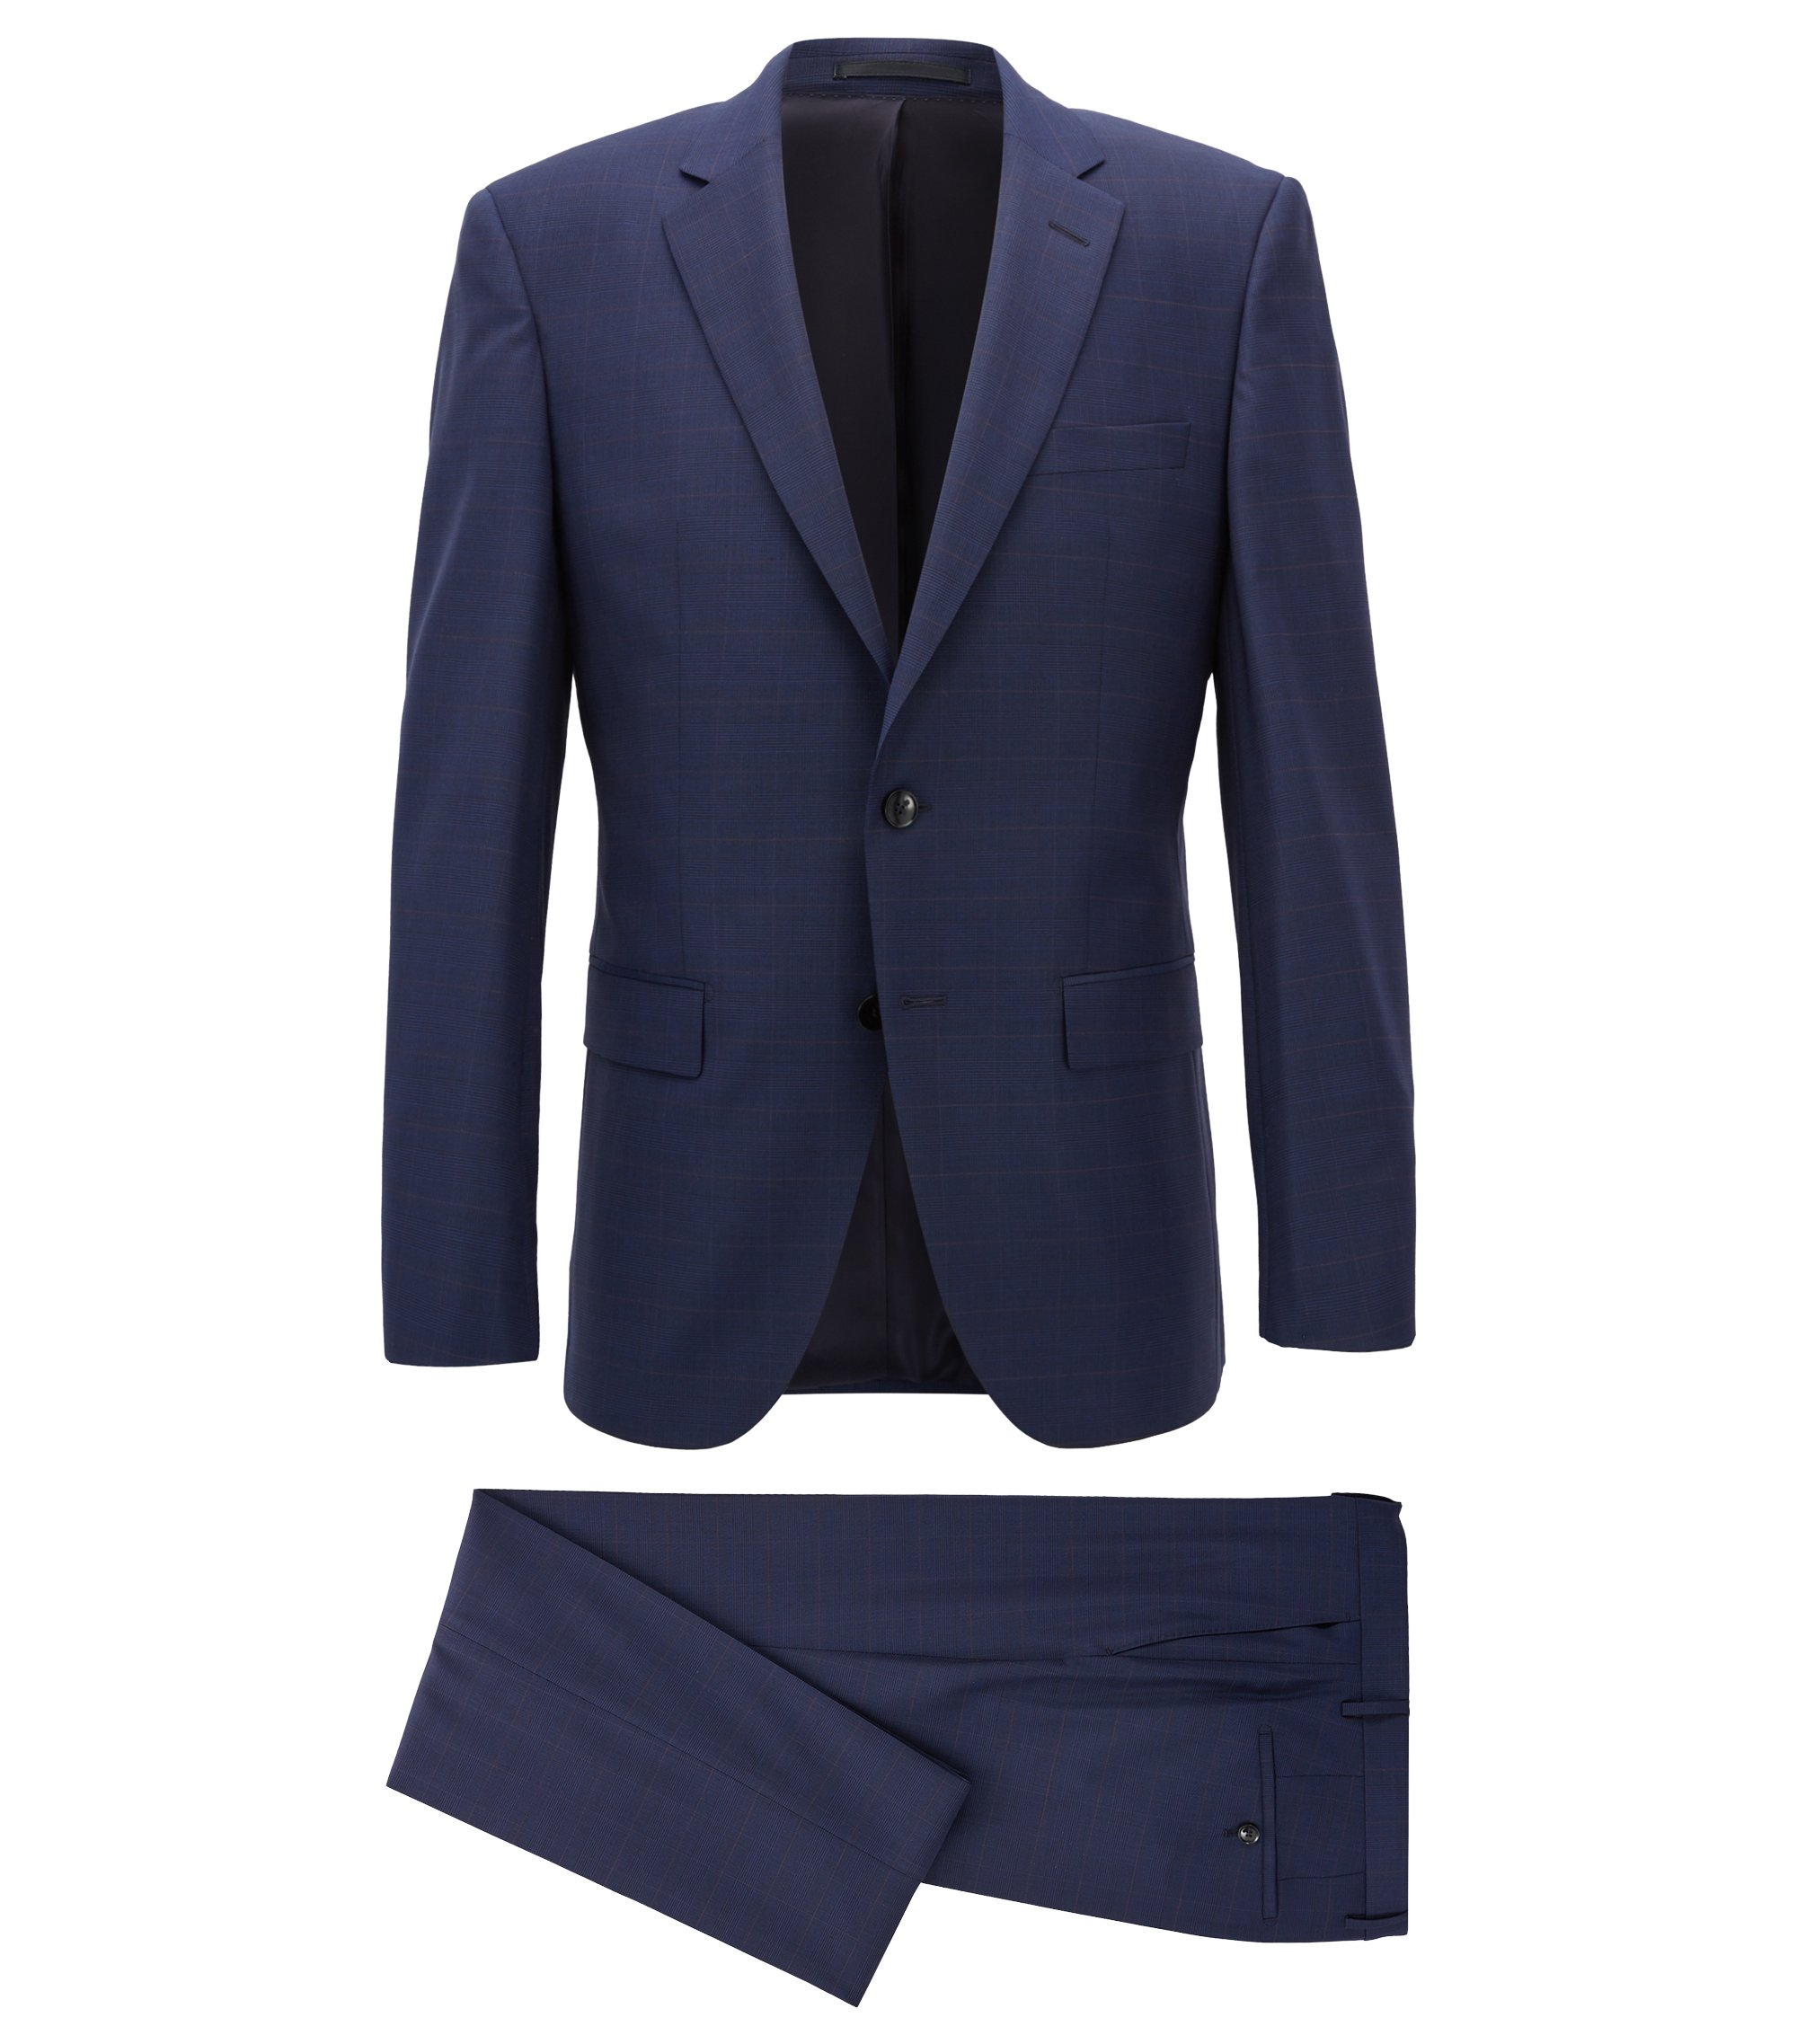 Plaid Virgin Wool Suit, Slim Fit | T-Harvers/Glover, Dark Blue